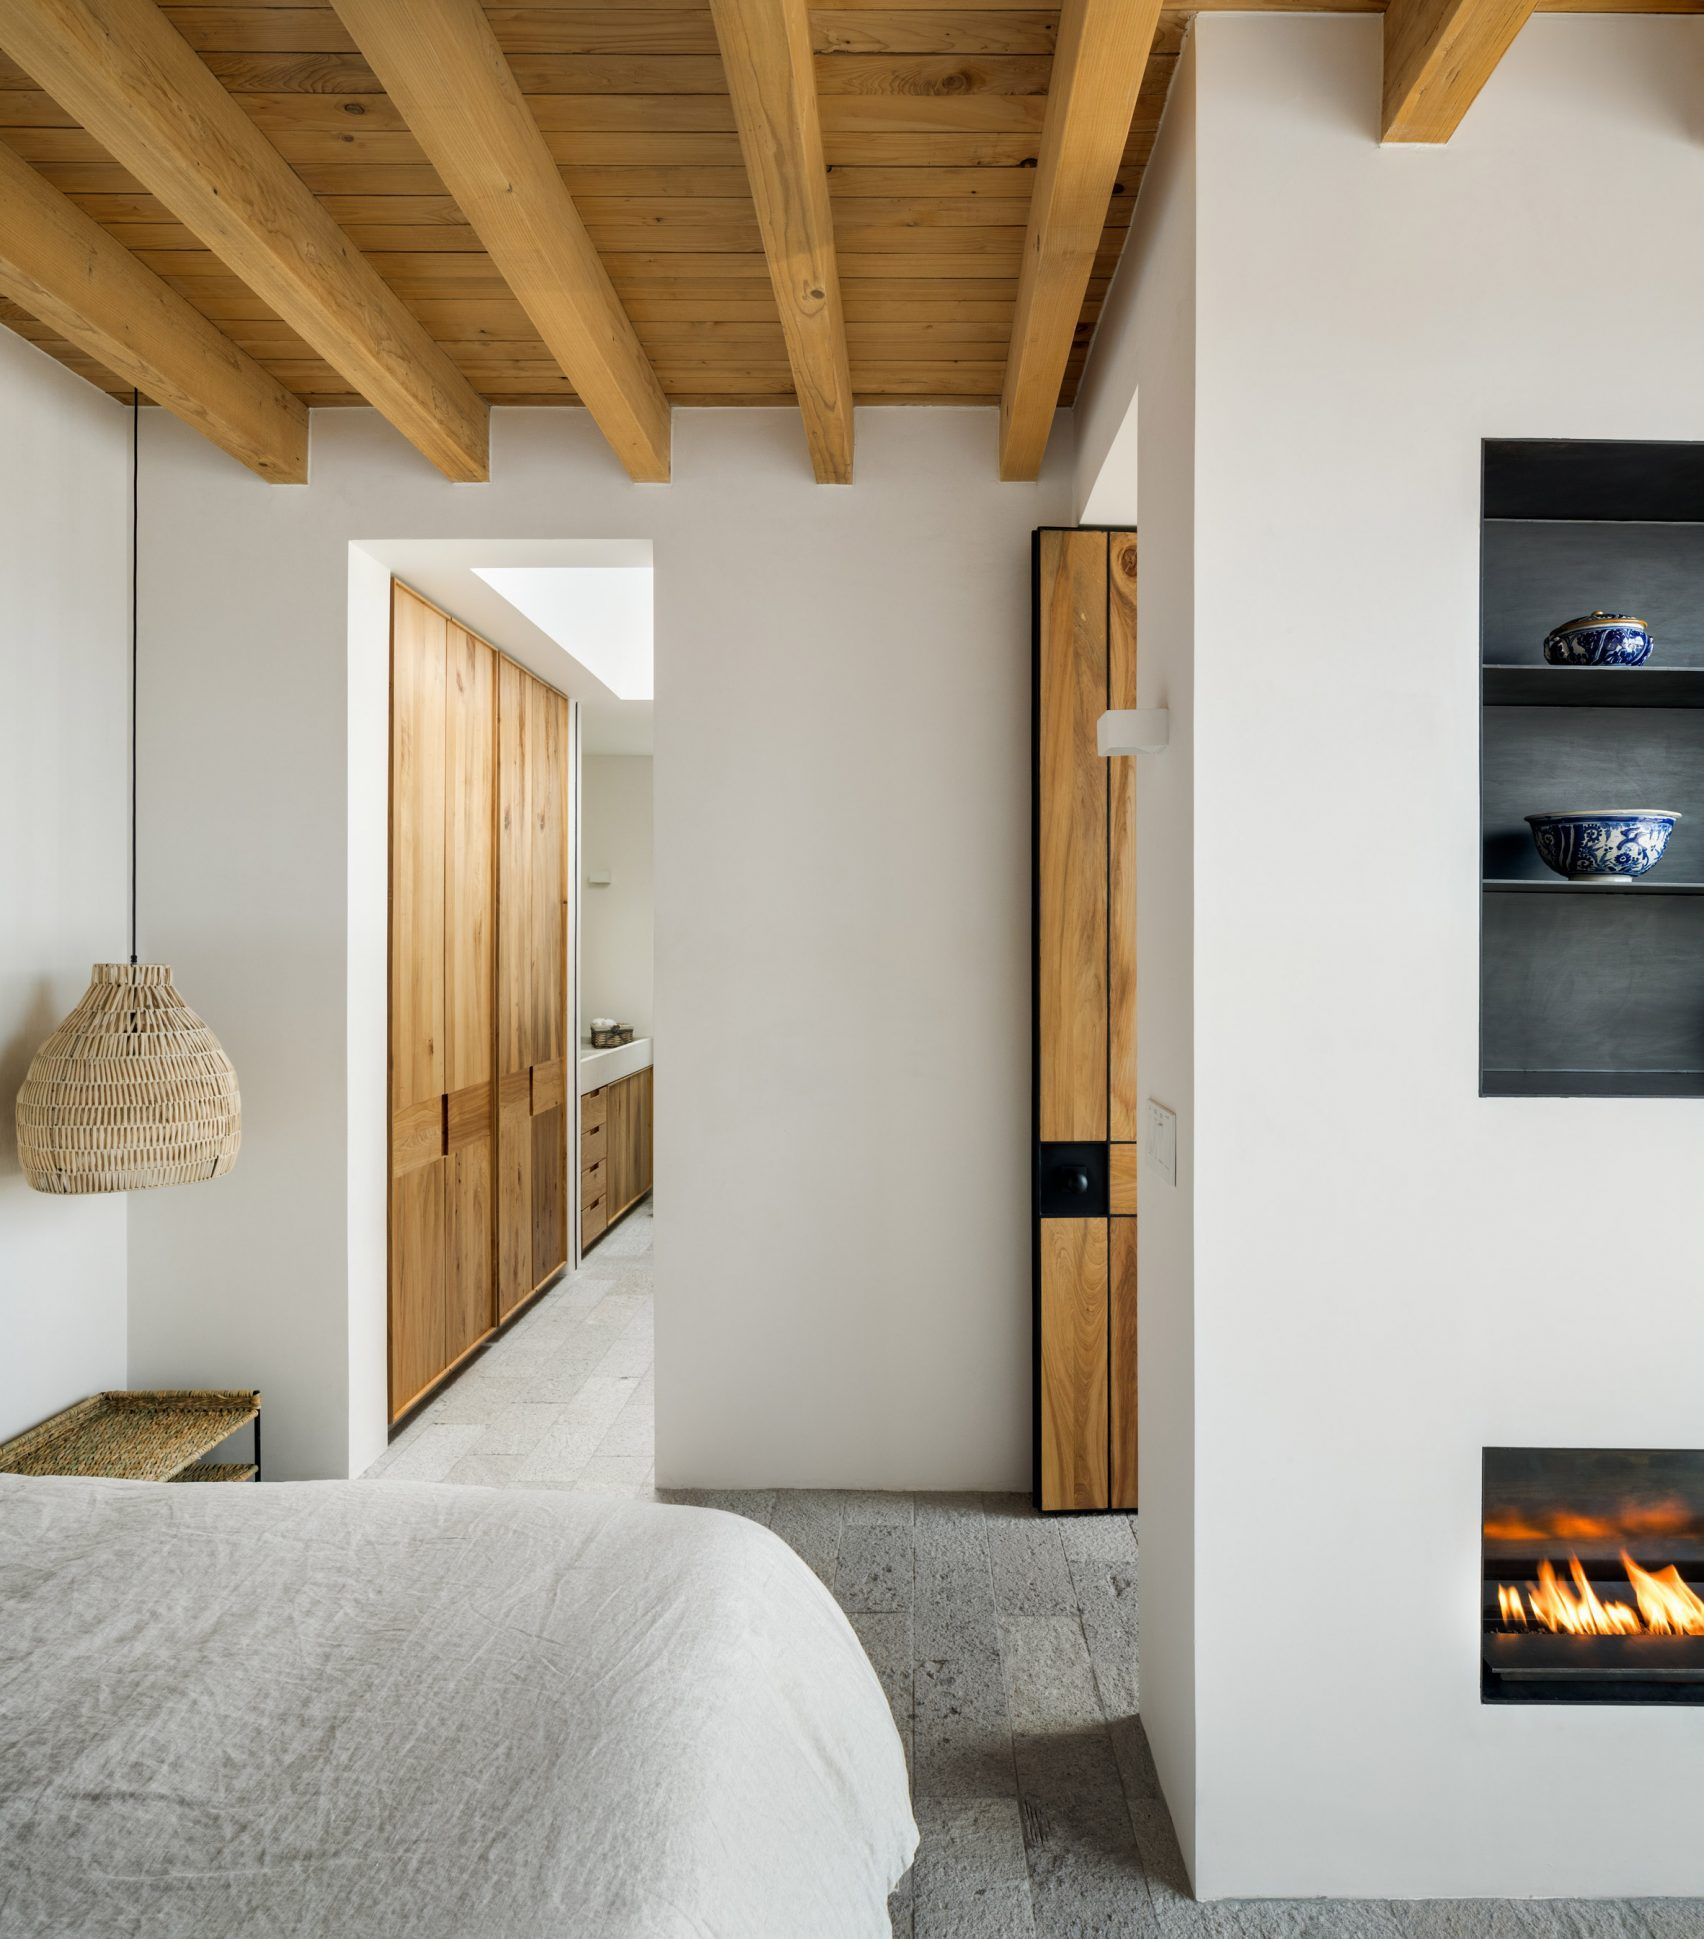 White Not Bright With Natural Wood Balance Still Gives A Minimalistic Vibe But With A Home In 2020 Interior Design Styles Scandinavian Interior Design House Design